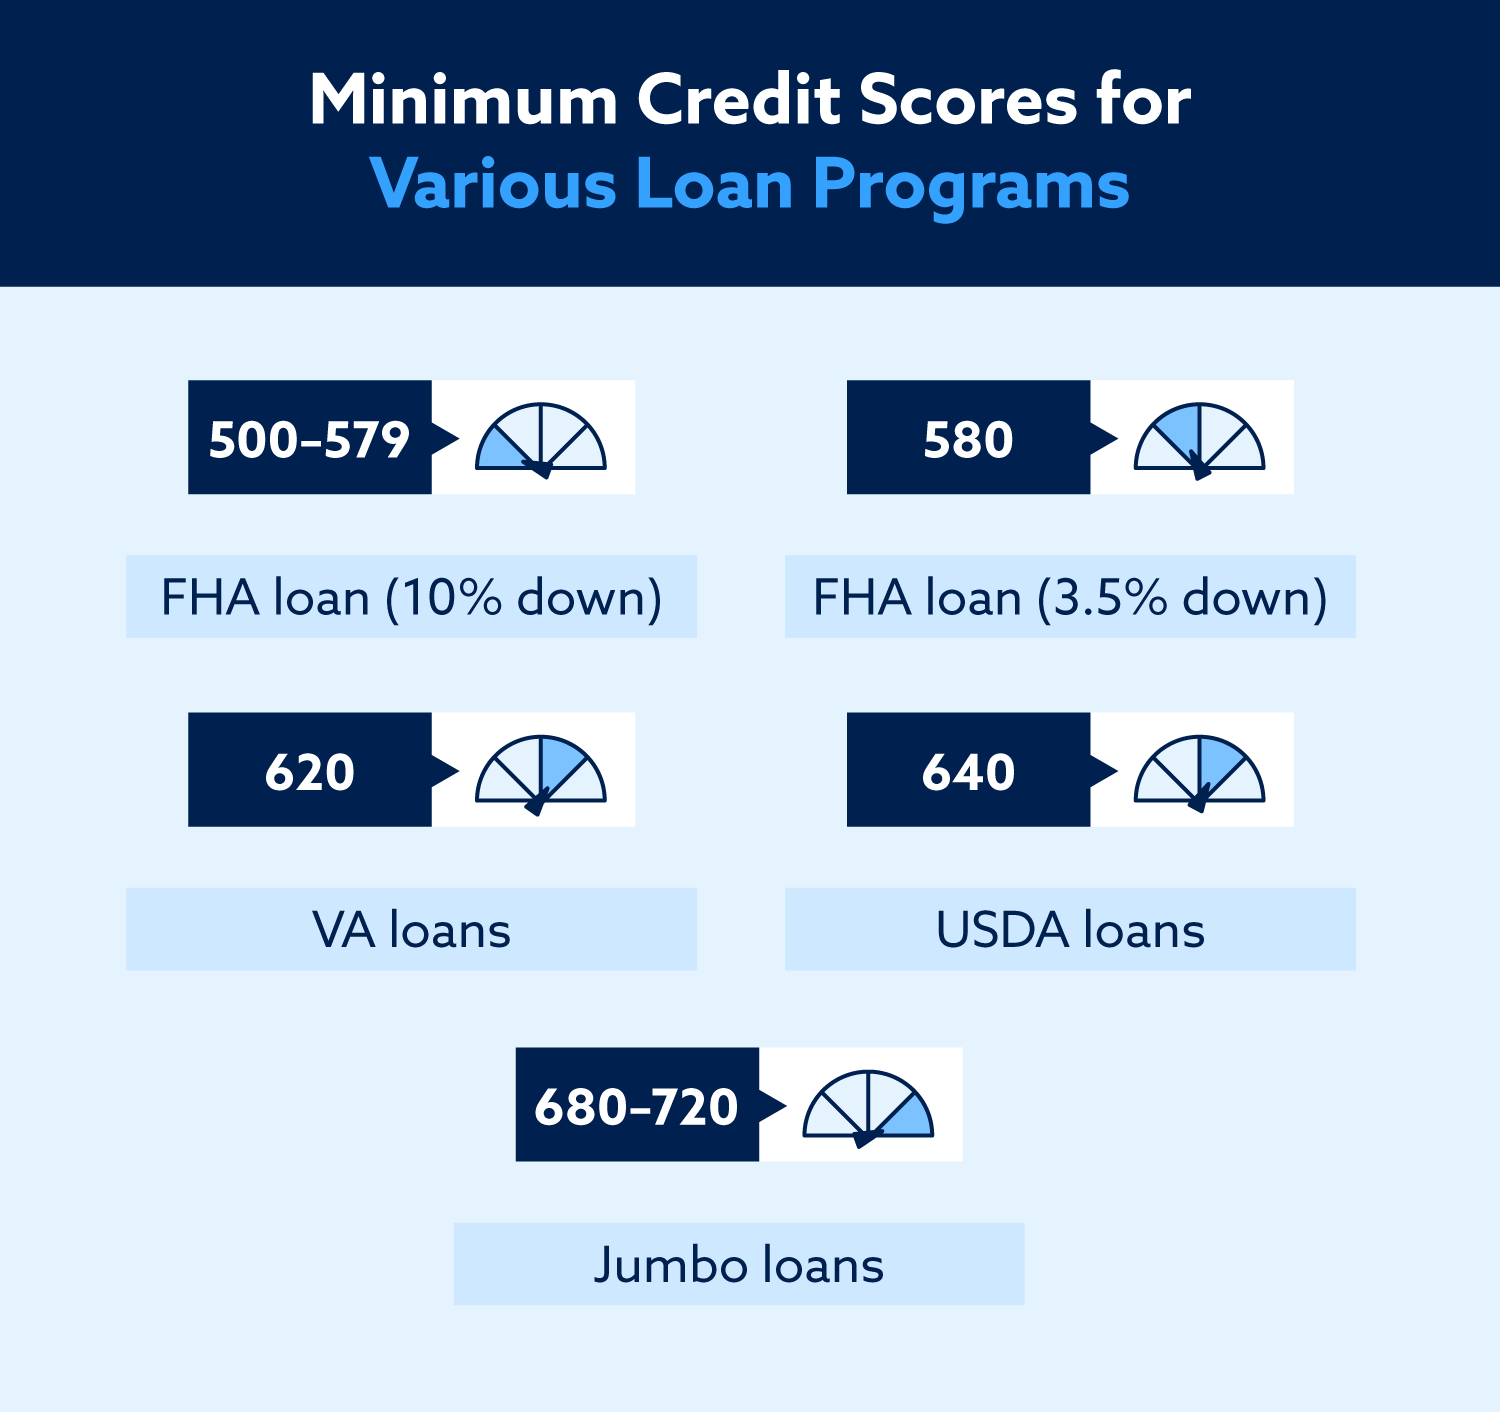 Minimum credit scores for various loan programs: 500–579 for an FHA loan at 10% down, 580 for an FHA loan at 3.5% down, 620 for a VA loan, 640 for a USDA loan, and 680–720 for a jumbo loan.